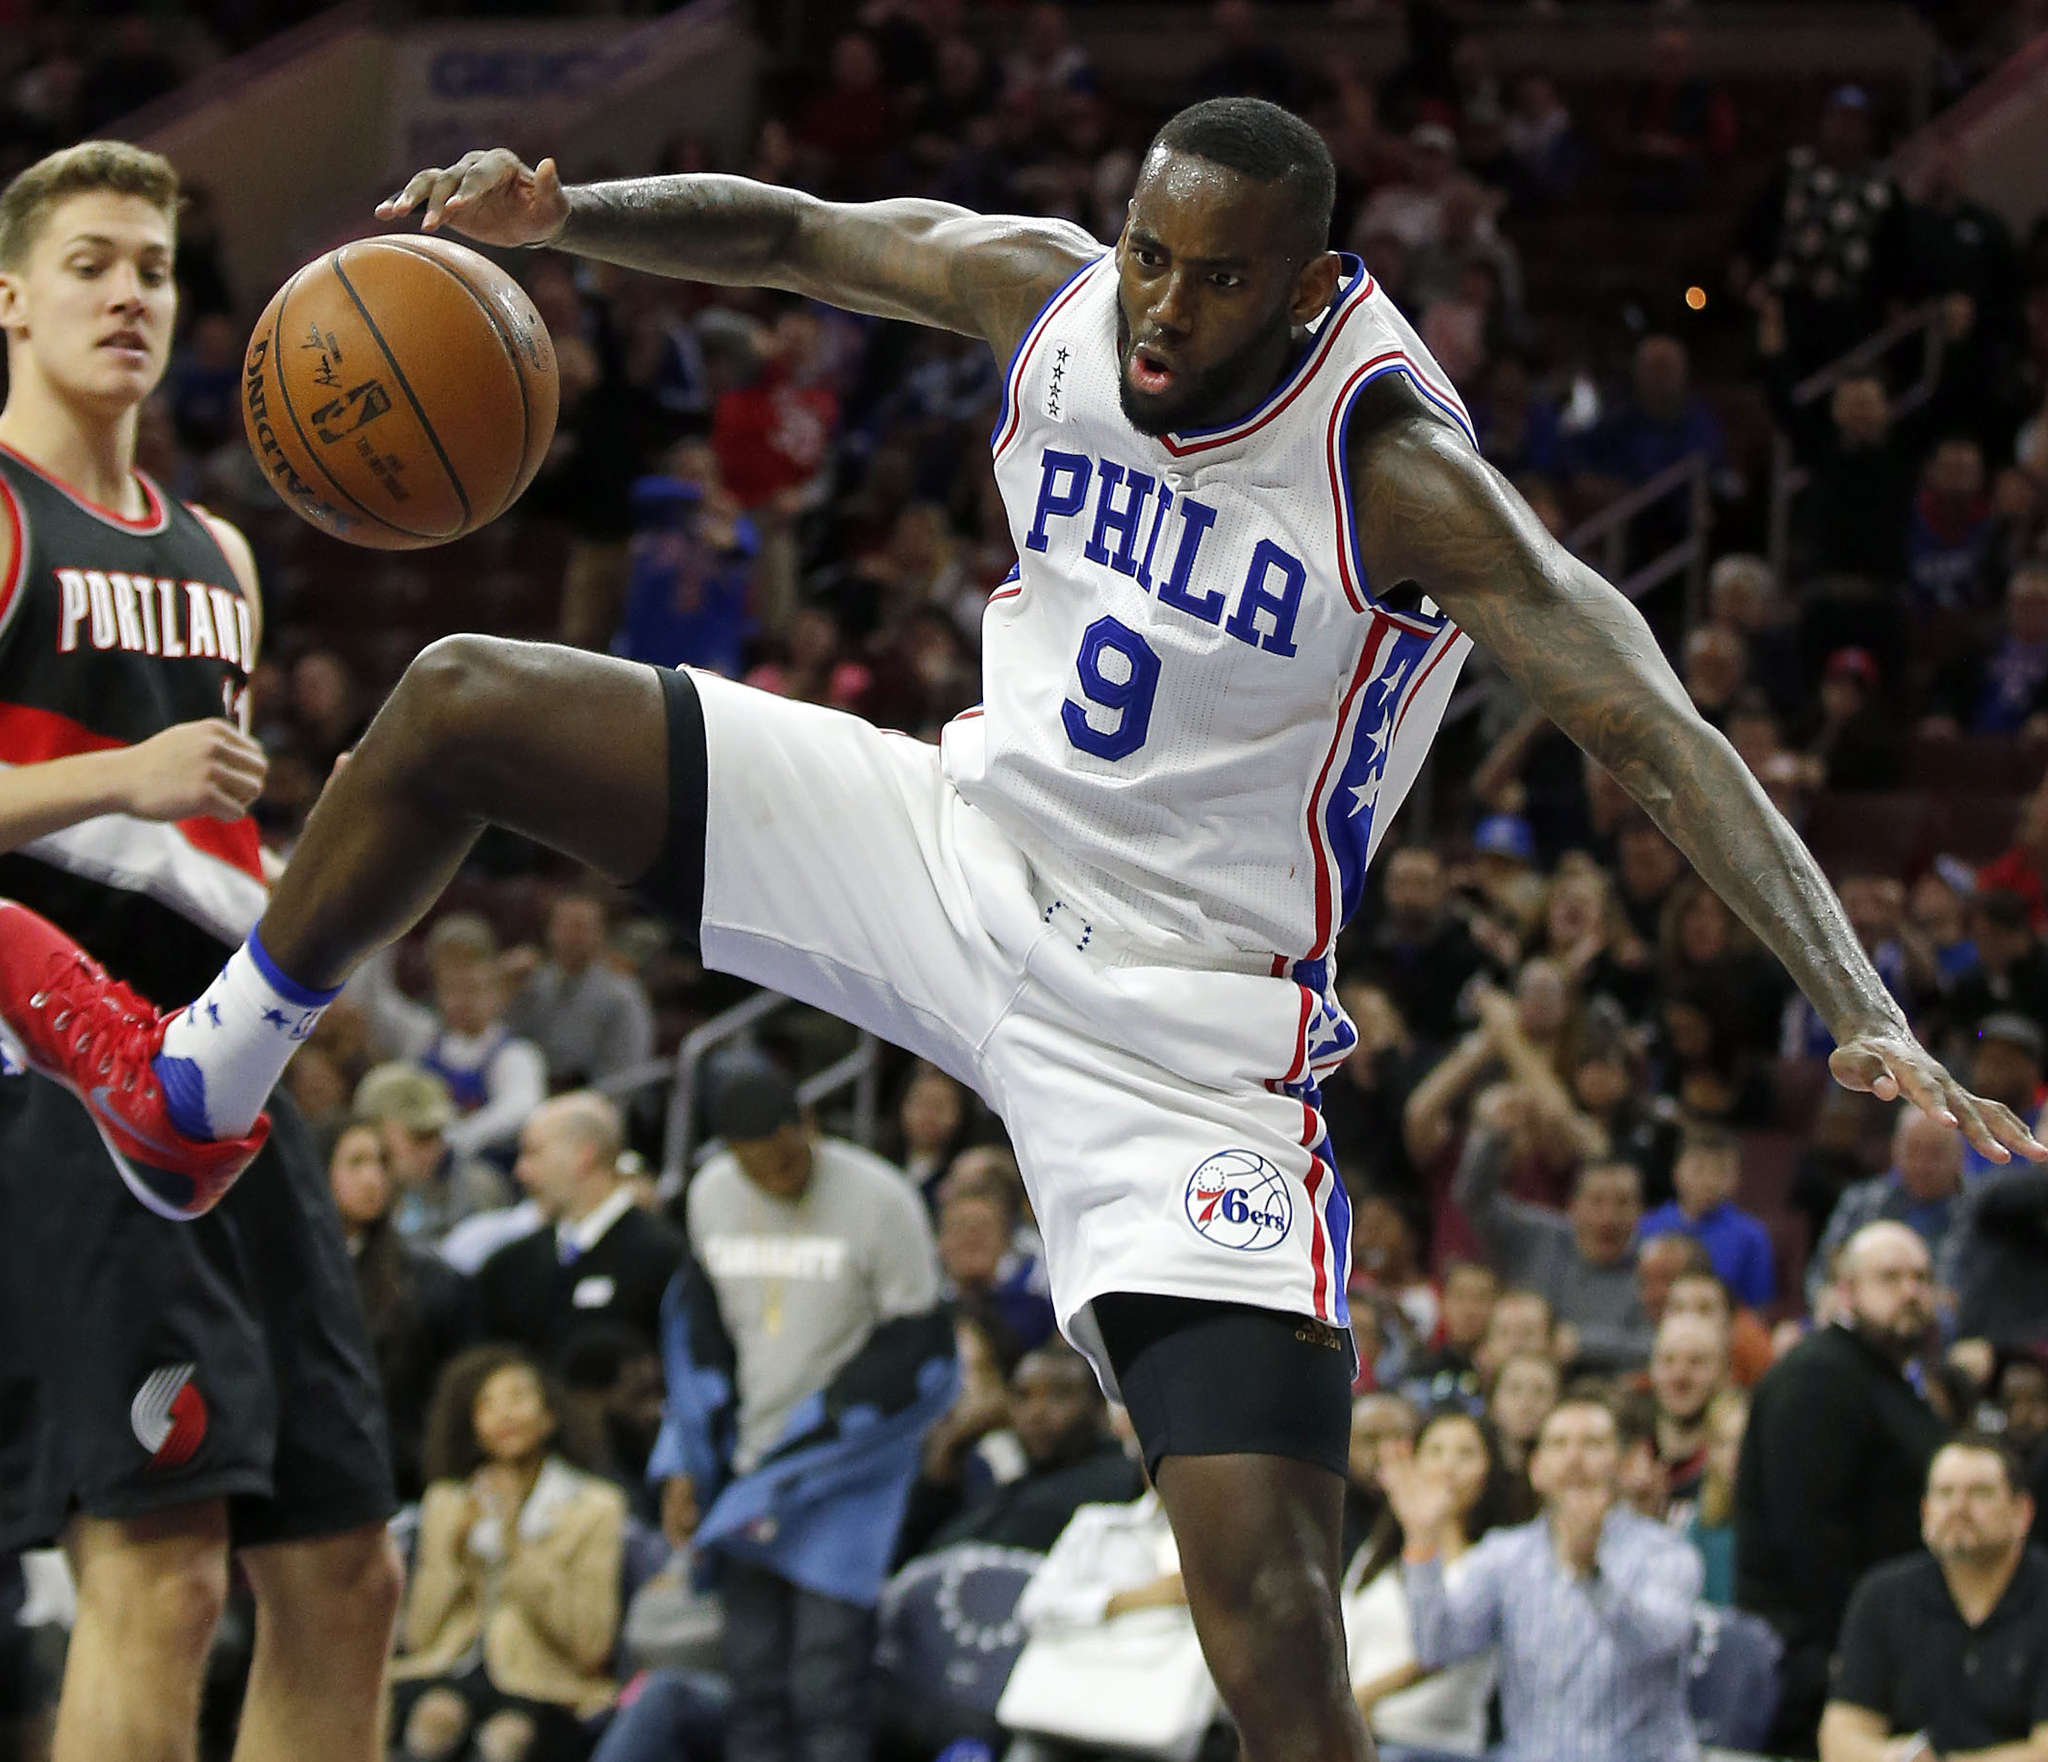 JaKarr Sampson, a hard worker with a strong locker room presence, was waived by the Sixers on Thursday.